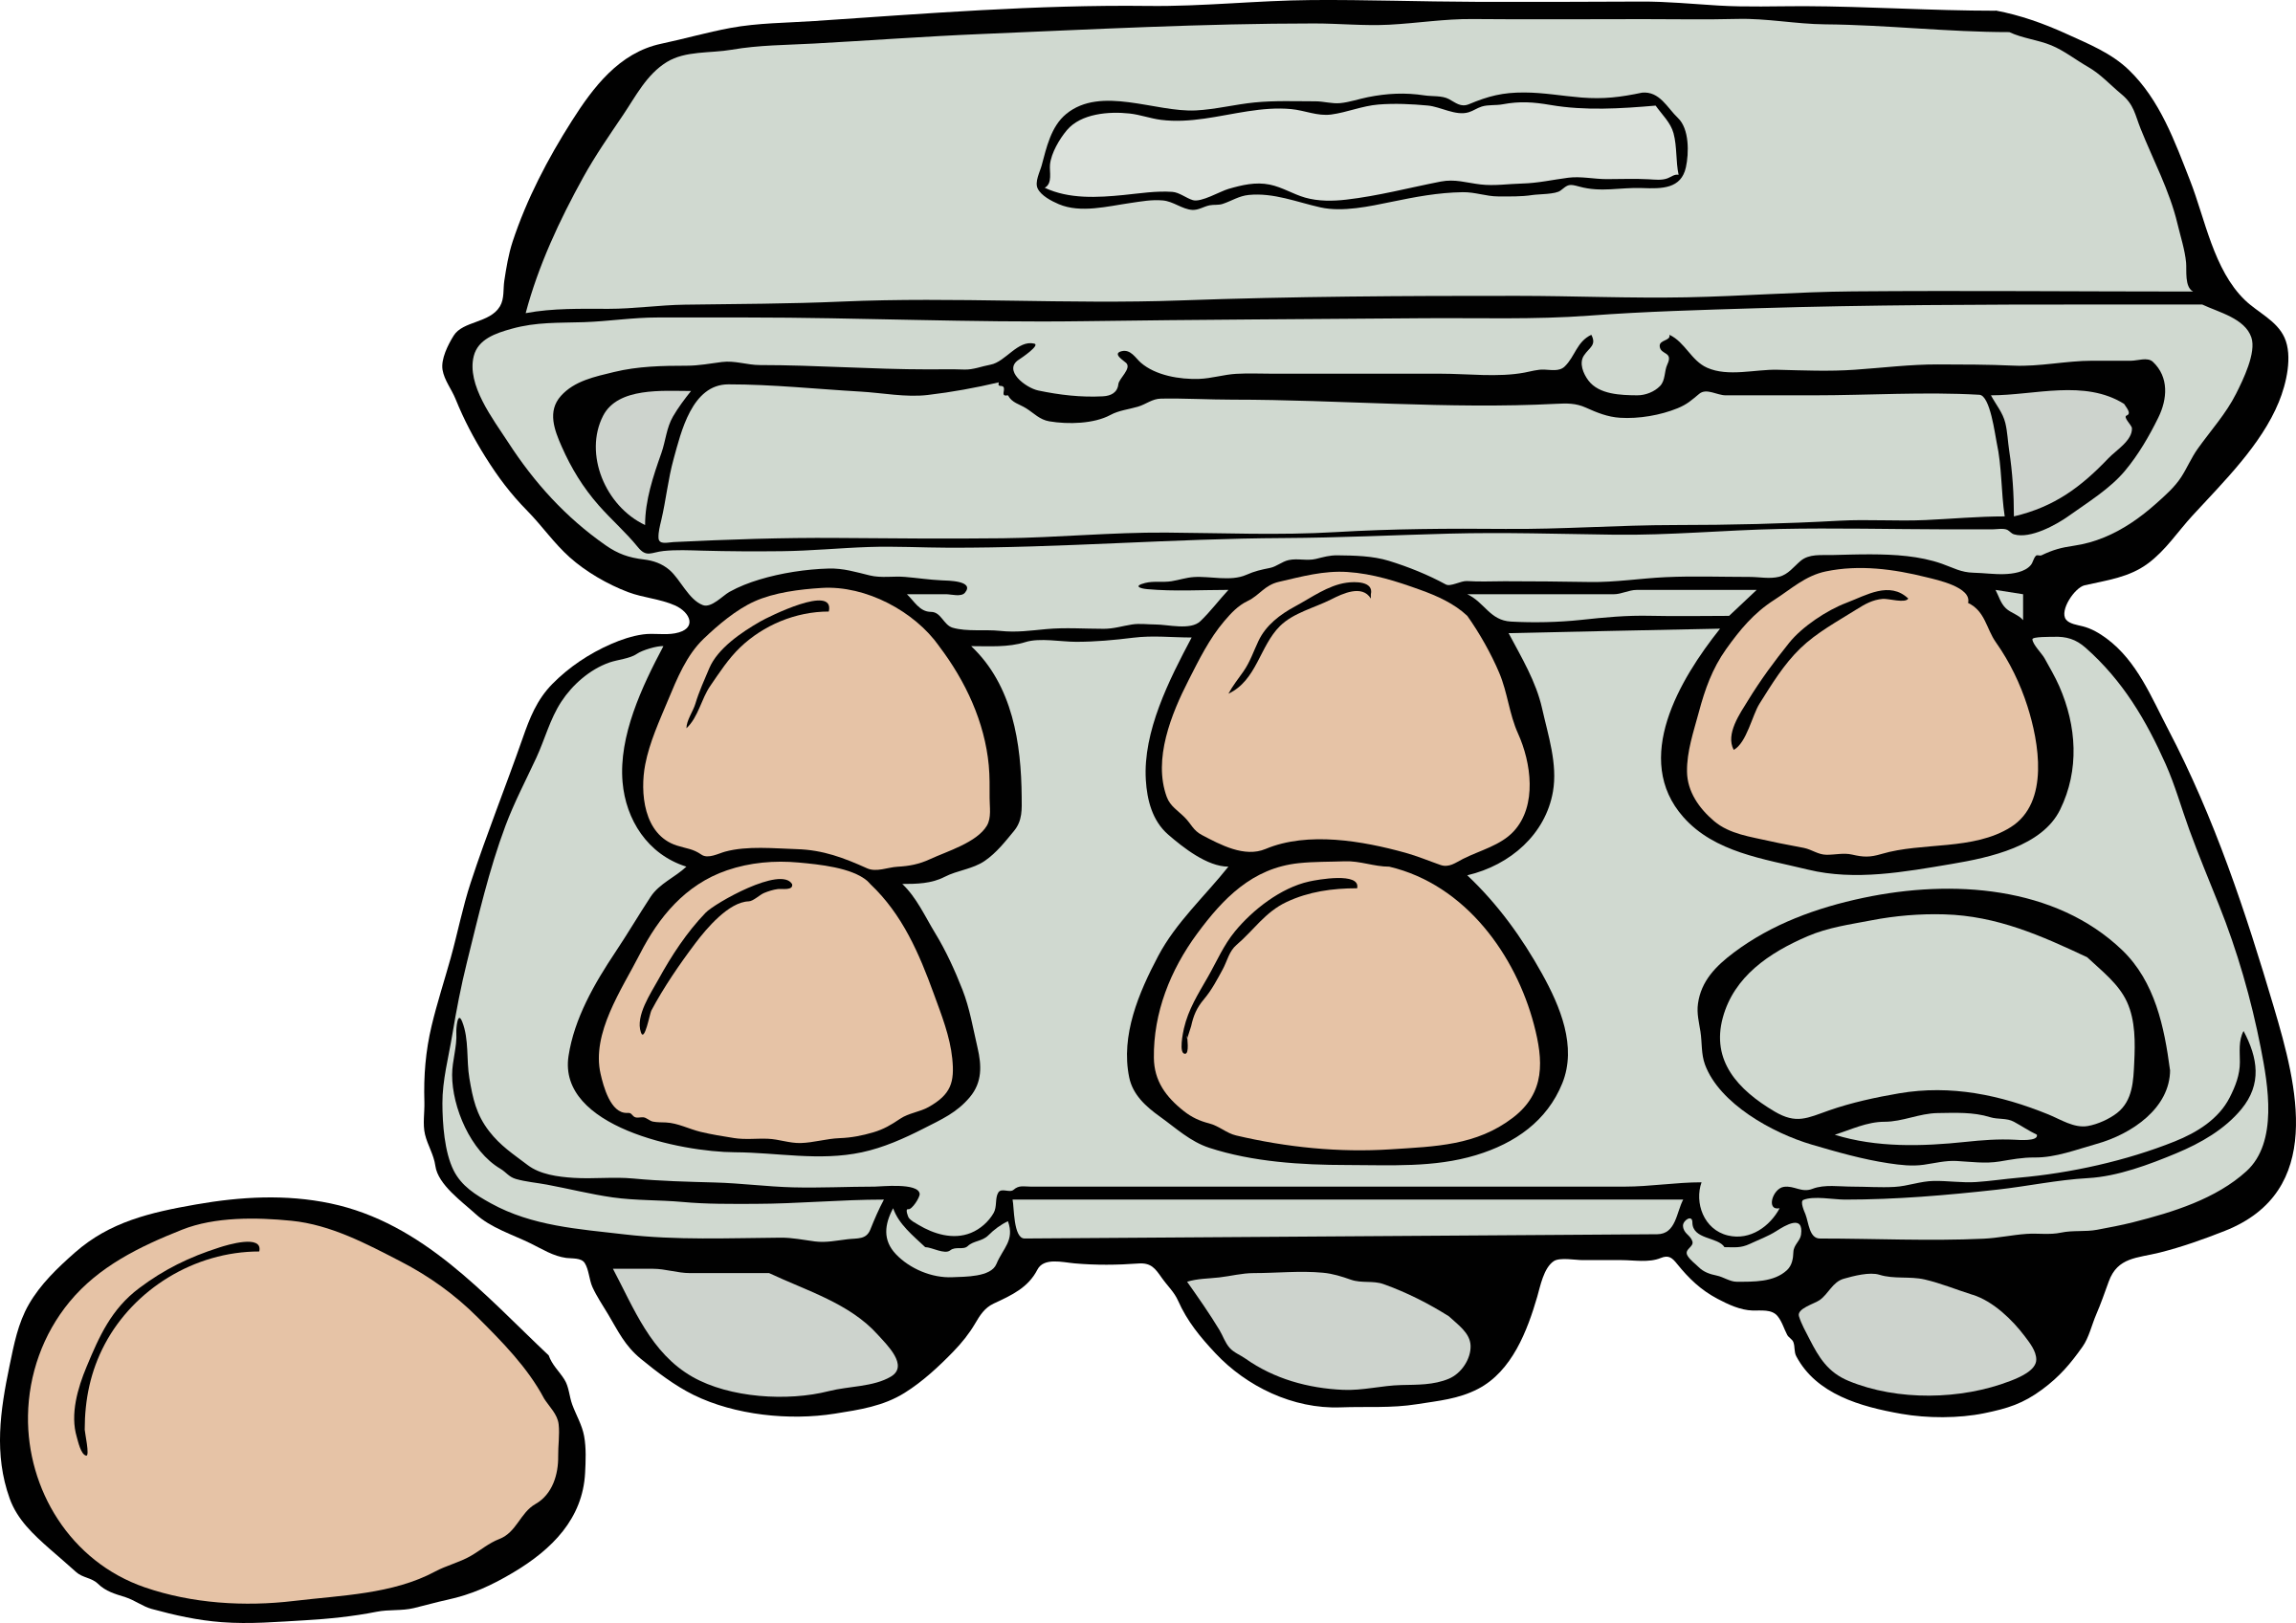 Egg clipart six, Egg six Transparent FREE for download on.